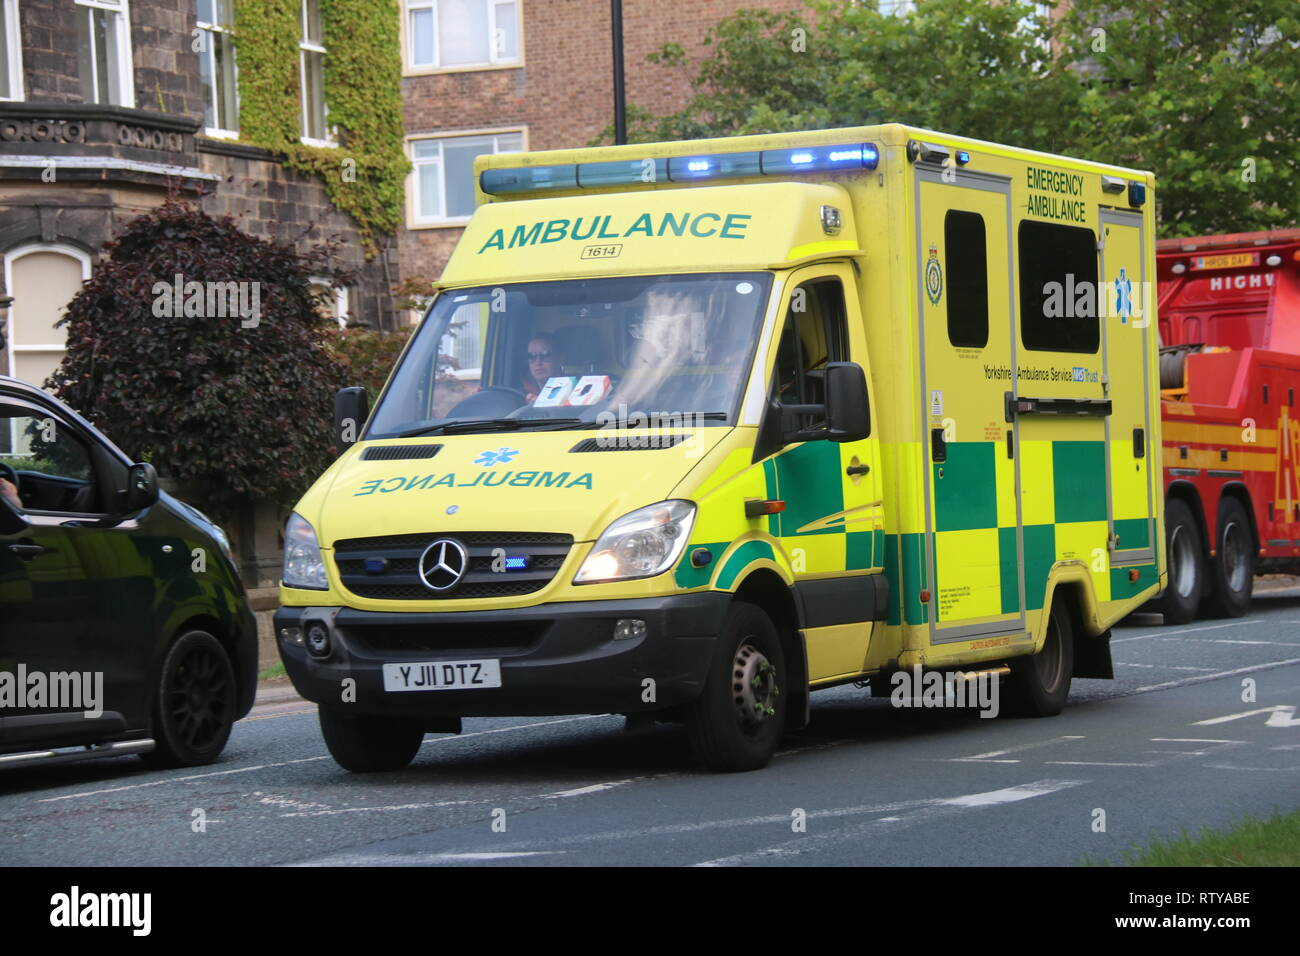 A YORKSHIRE AMBULANCE WITH BLUE LIGHTS FLASHING ON A BUSY STREET - Stock Image